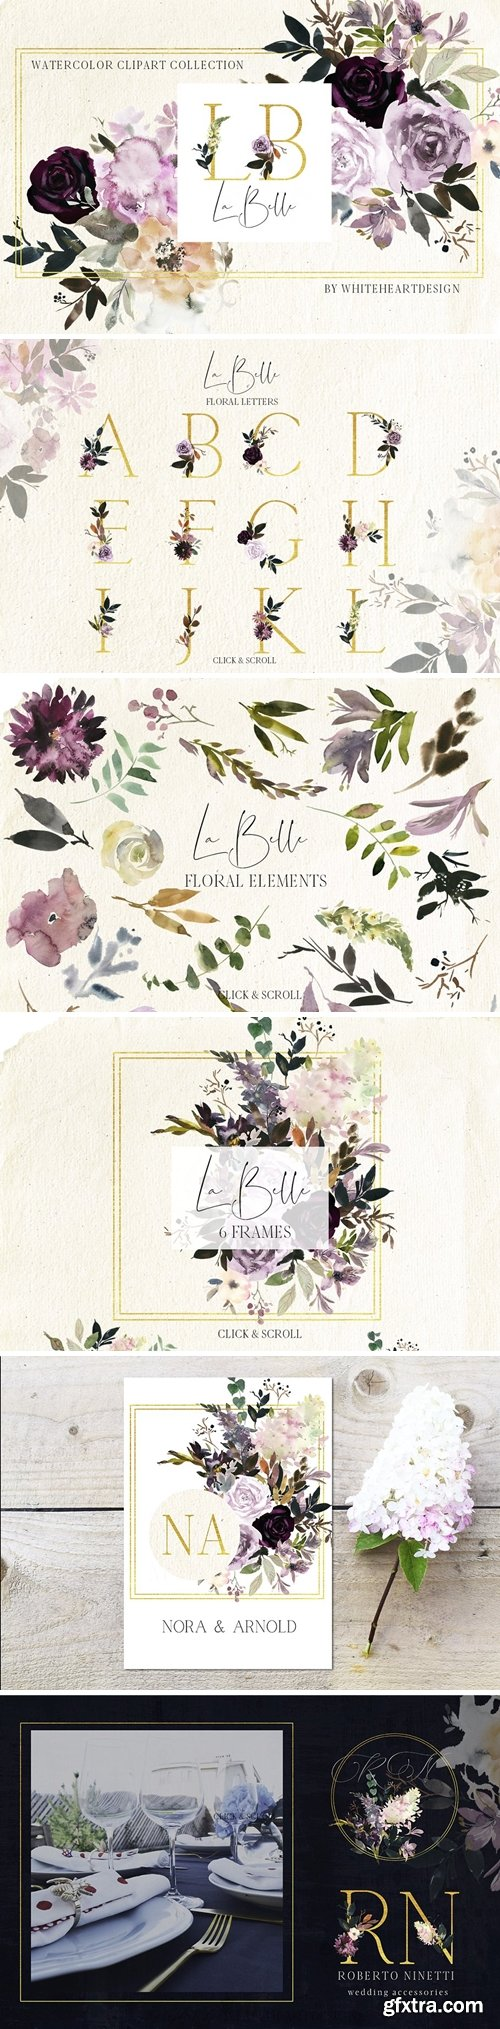 CM - La Belle Watercolor Floral Clipart 2876711